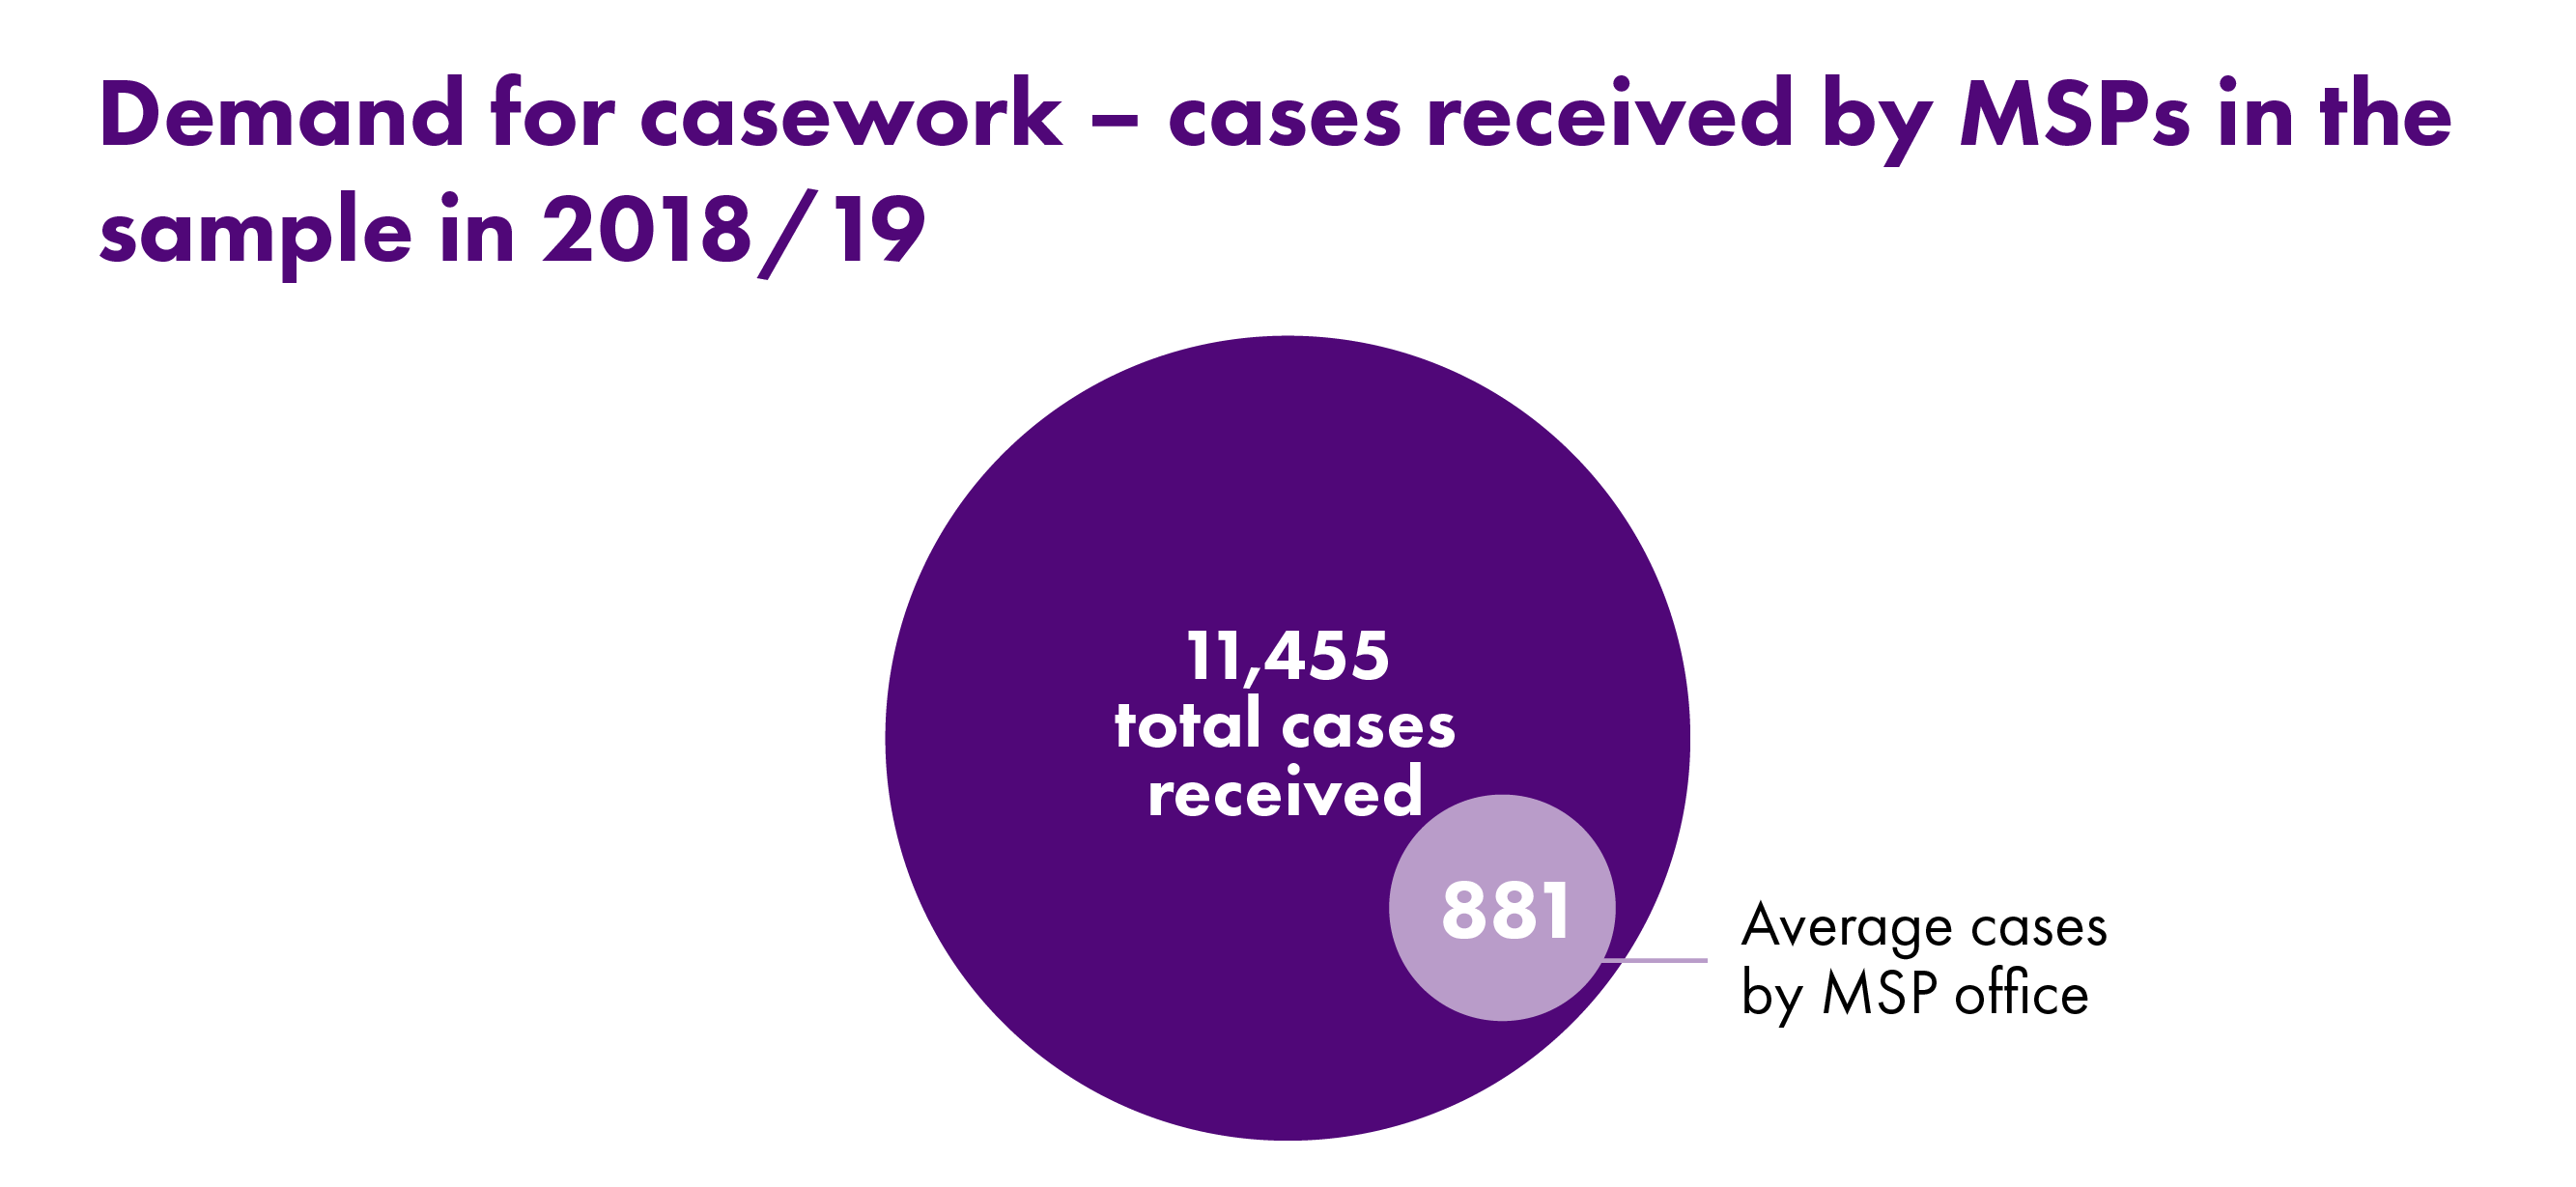 Infographic showing cases received by MSPs in the sample in 2018/19.  A total of 11,455 cases were received, with an average of 881 per office.